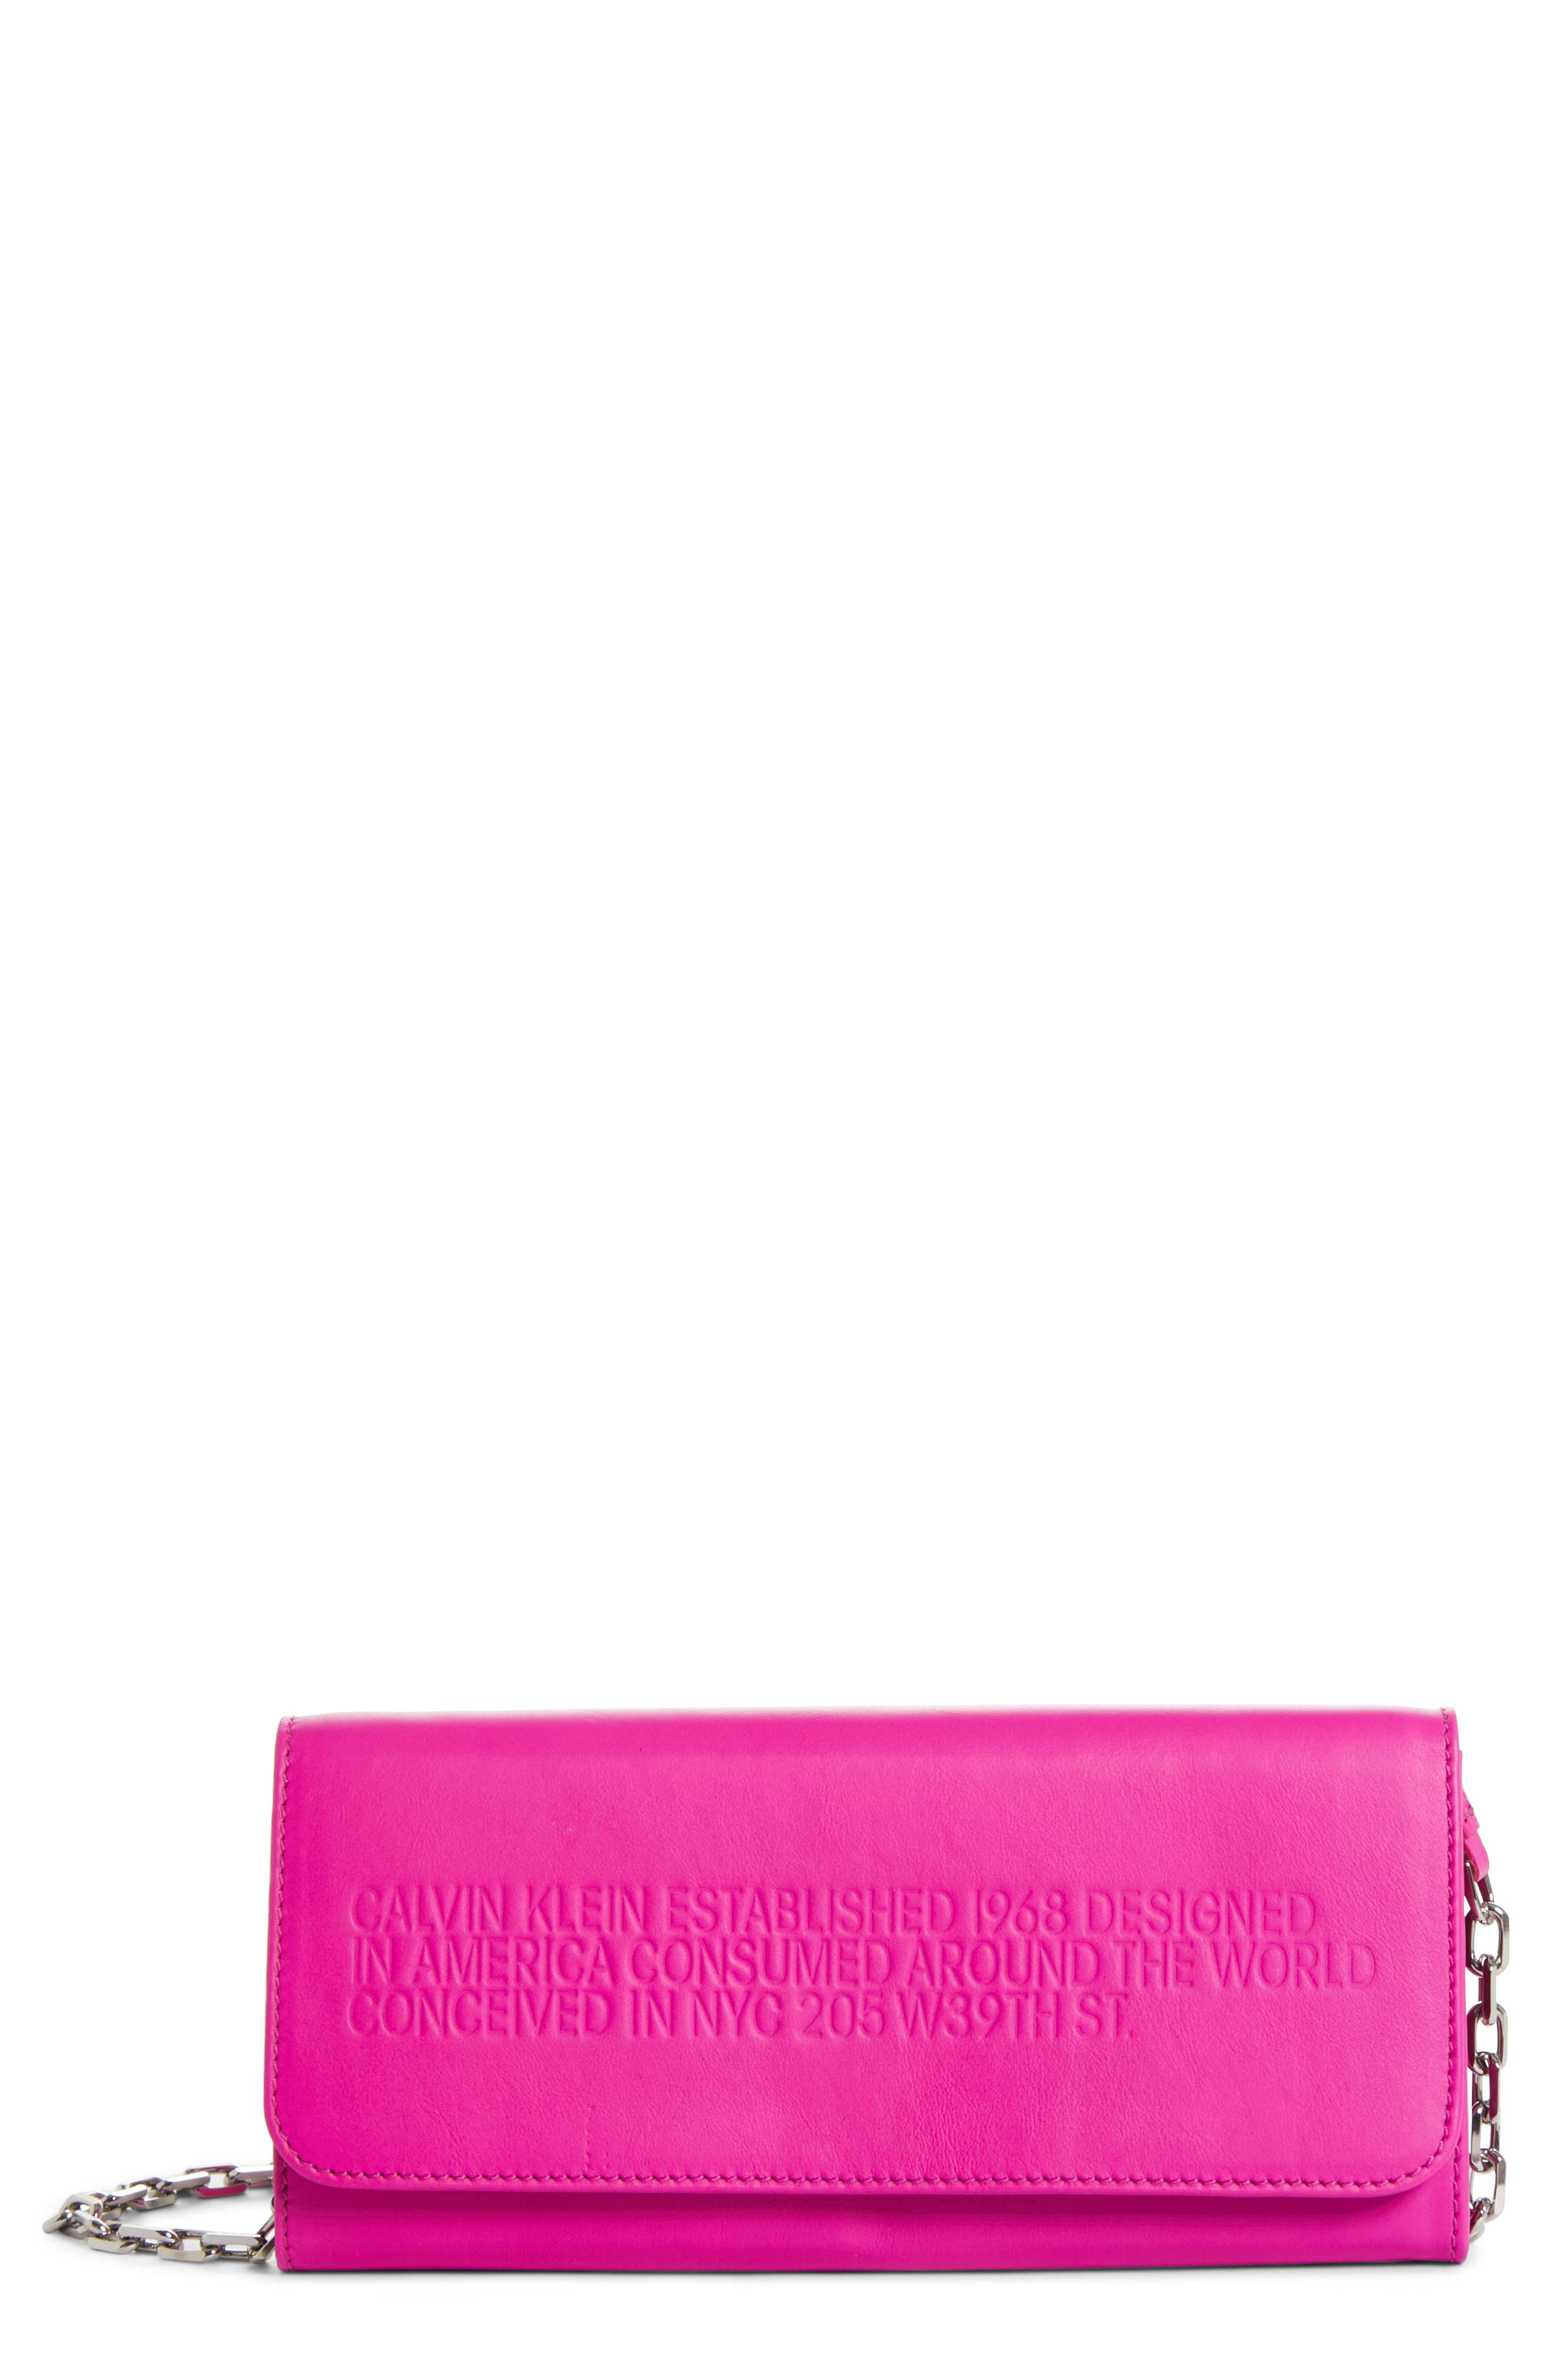 CALVIN KLEIN 205W39NYC, Leather Wallet on a Chain, Main thumbnail 1, color, SHOCKING